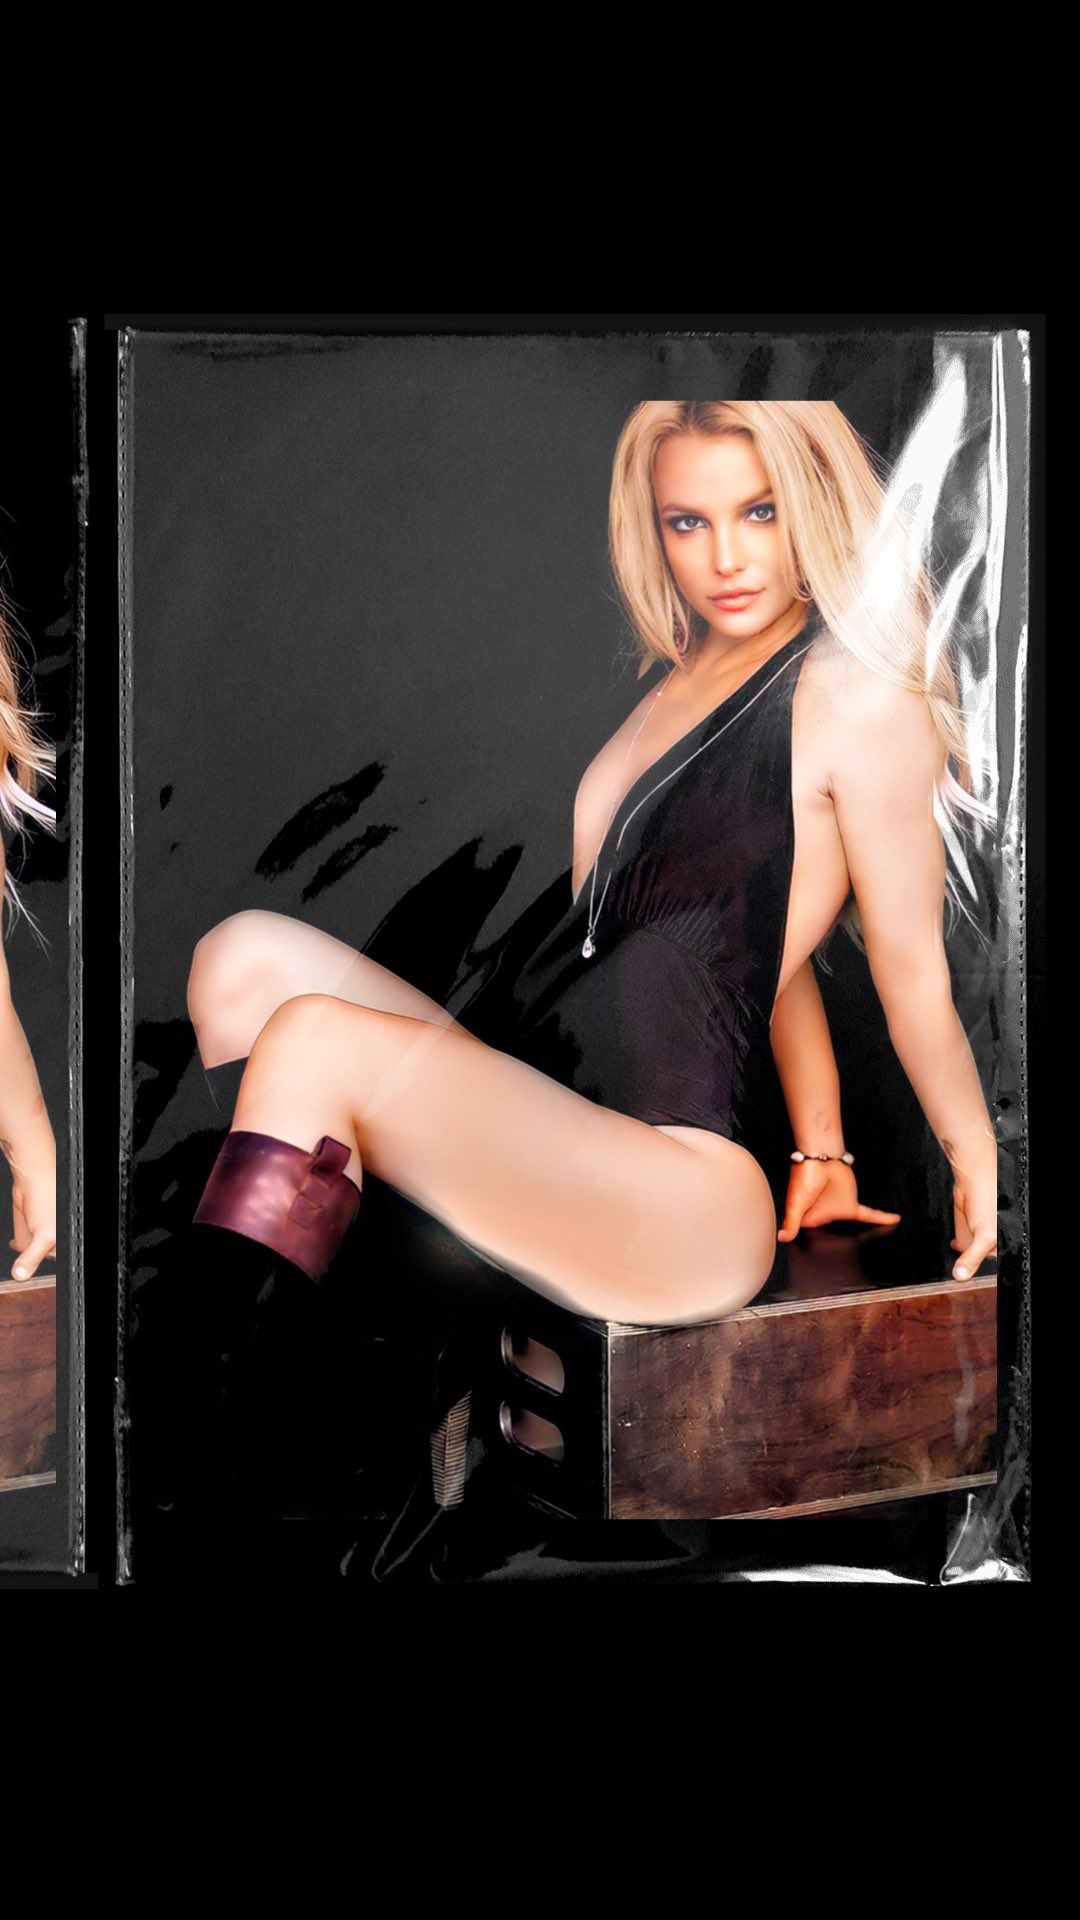 &title=New%20Britney%20outtakes%20from%2